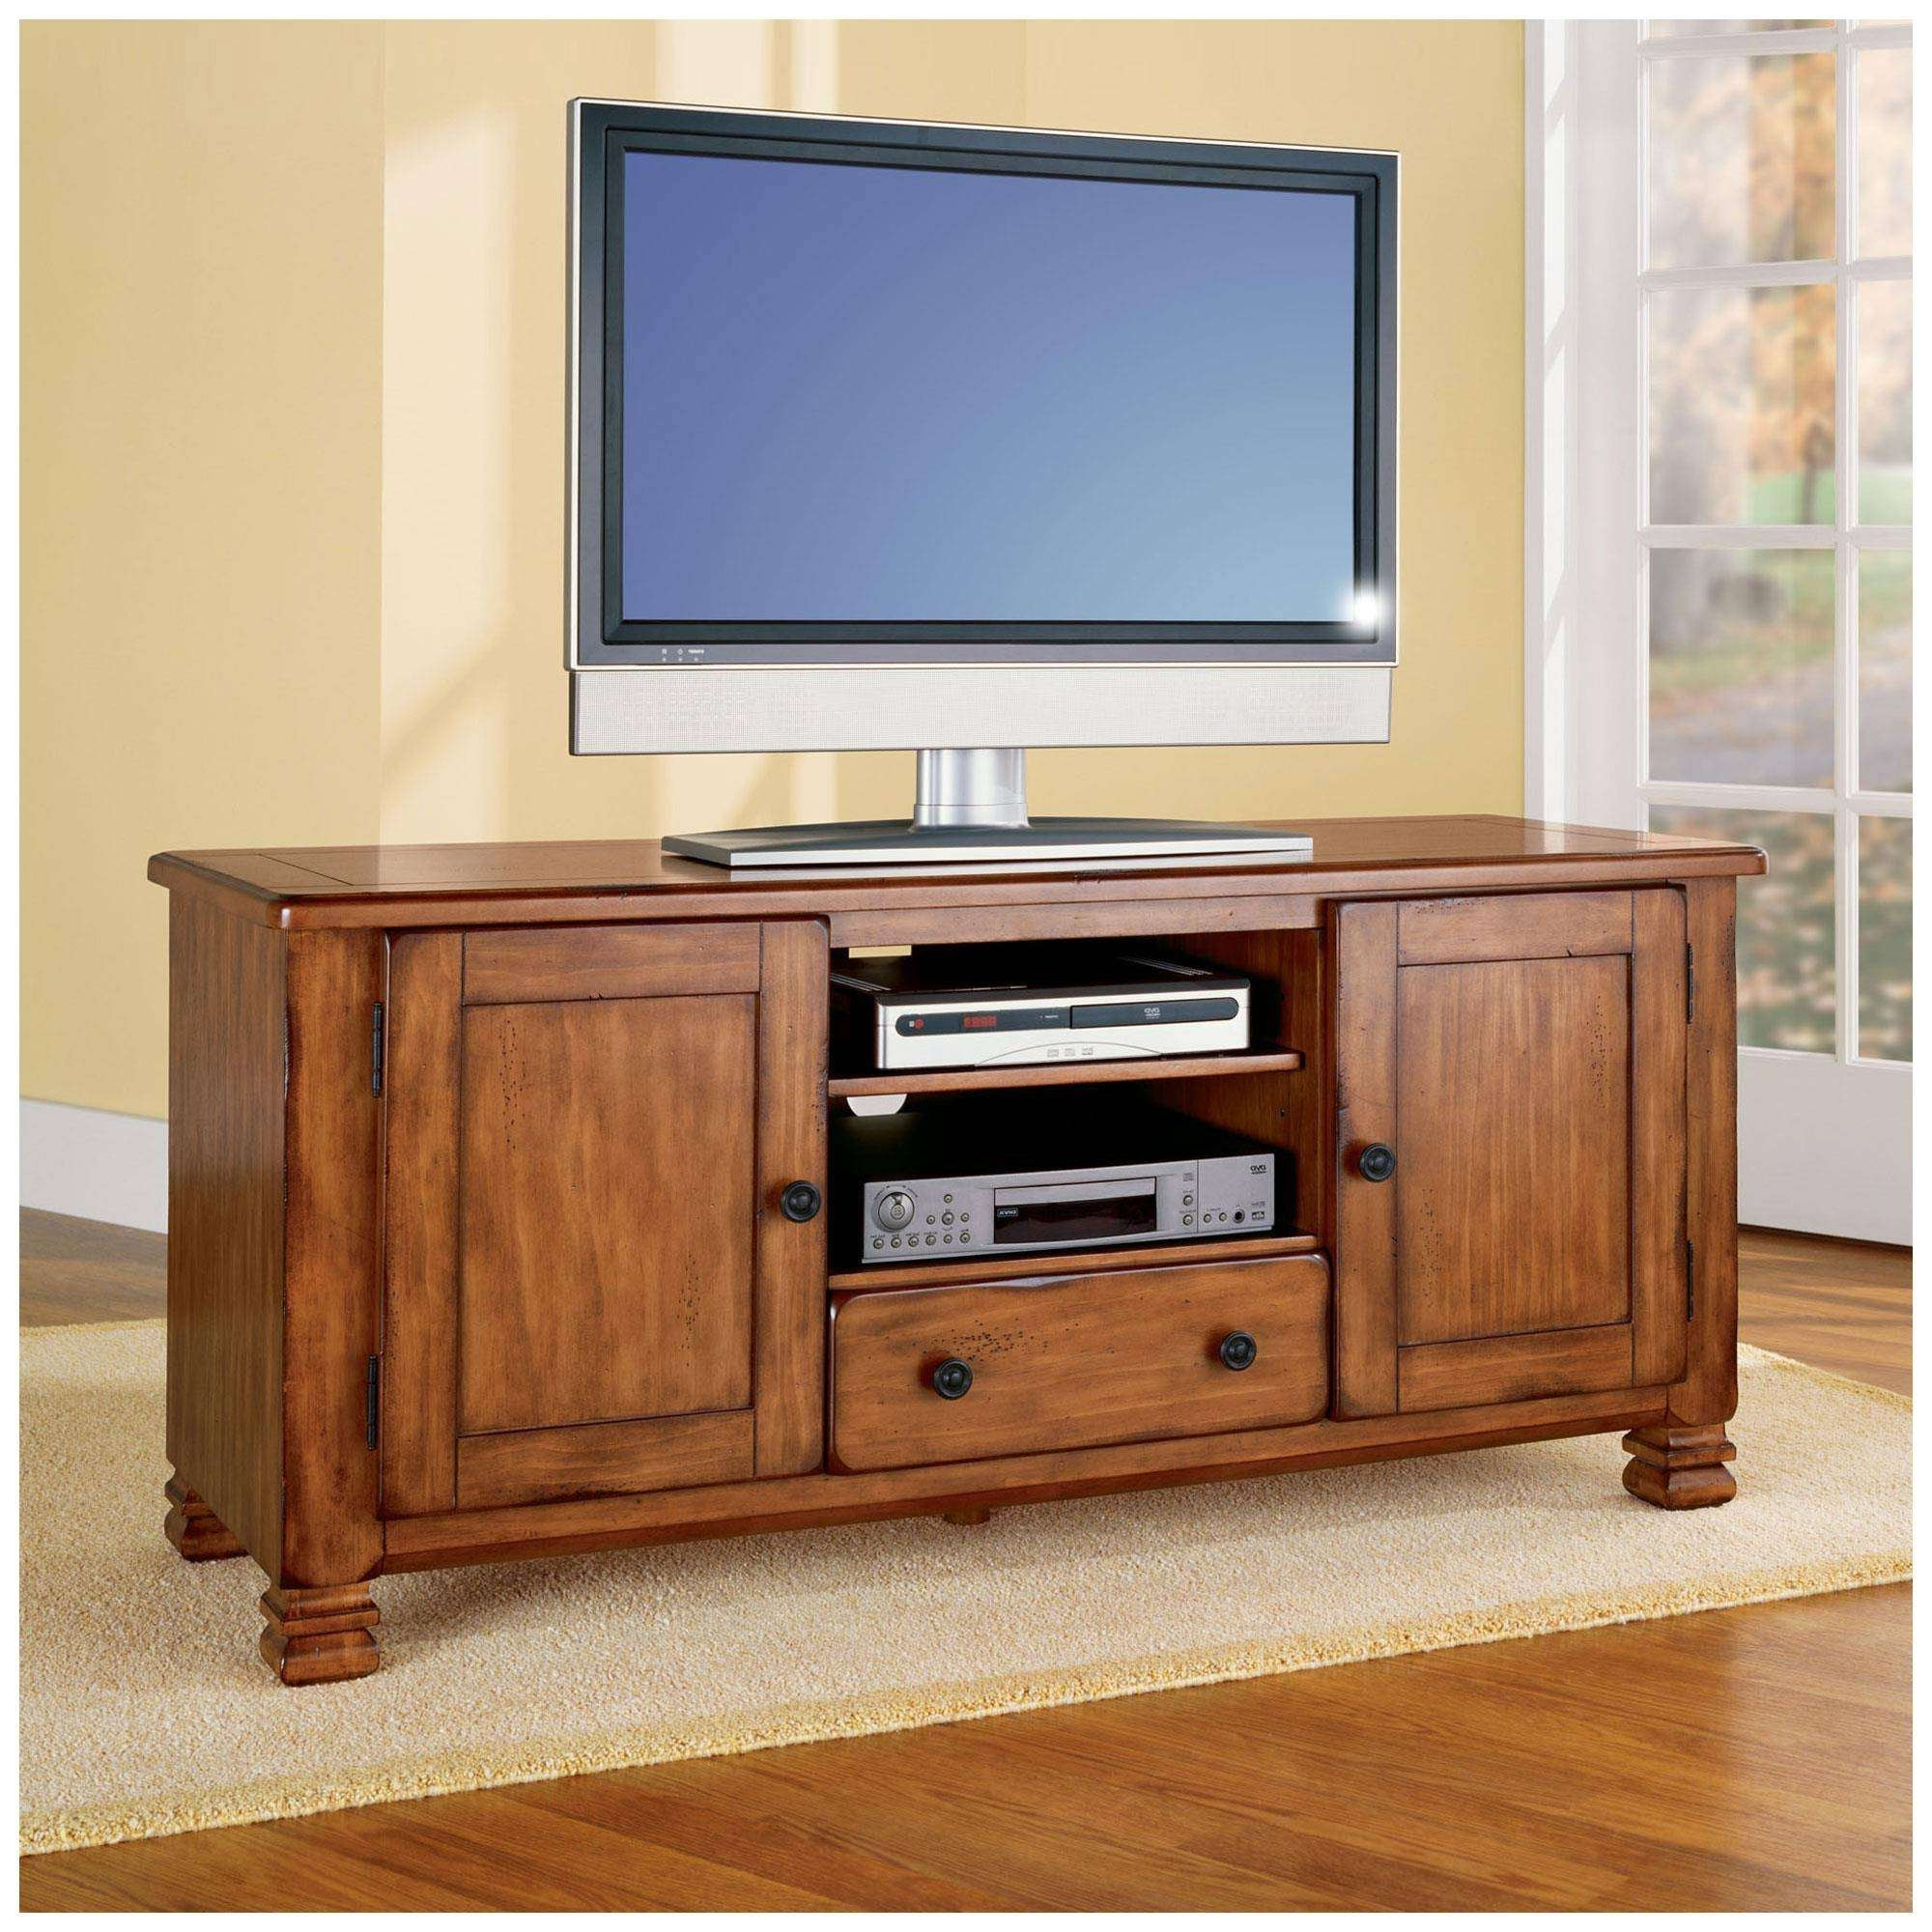 Home Decor: Cozy Wood Tv Stands For Flat Screens And View Photos Pertaining To Light Oak Tv Stands Flat Screen (View 4 of 15)